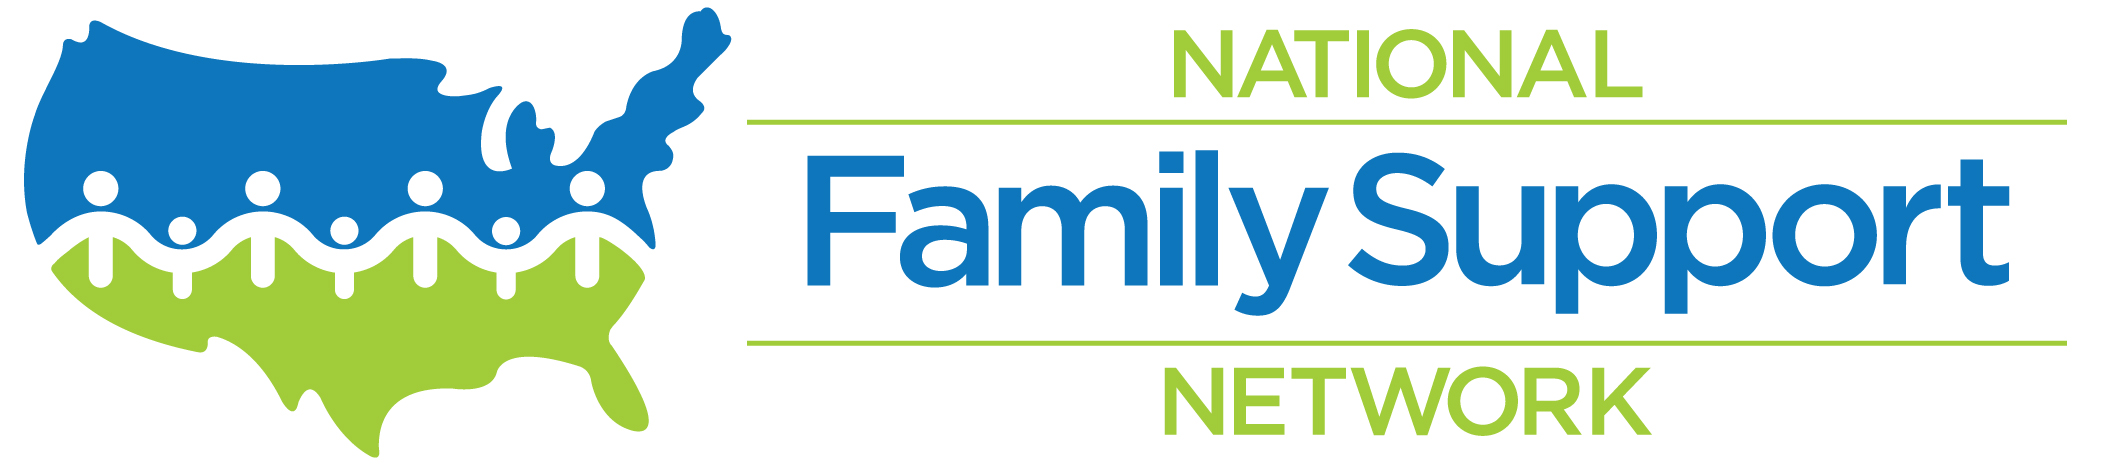 National Family Support Network logo